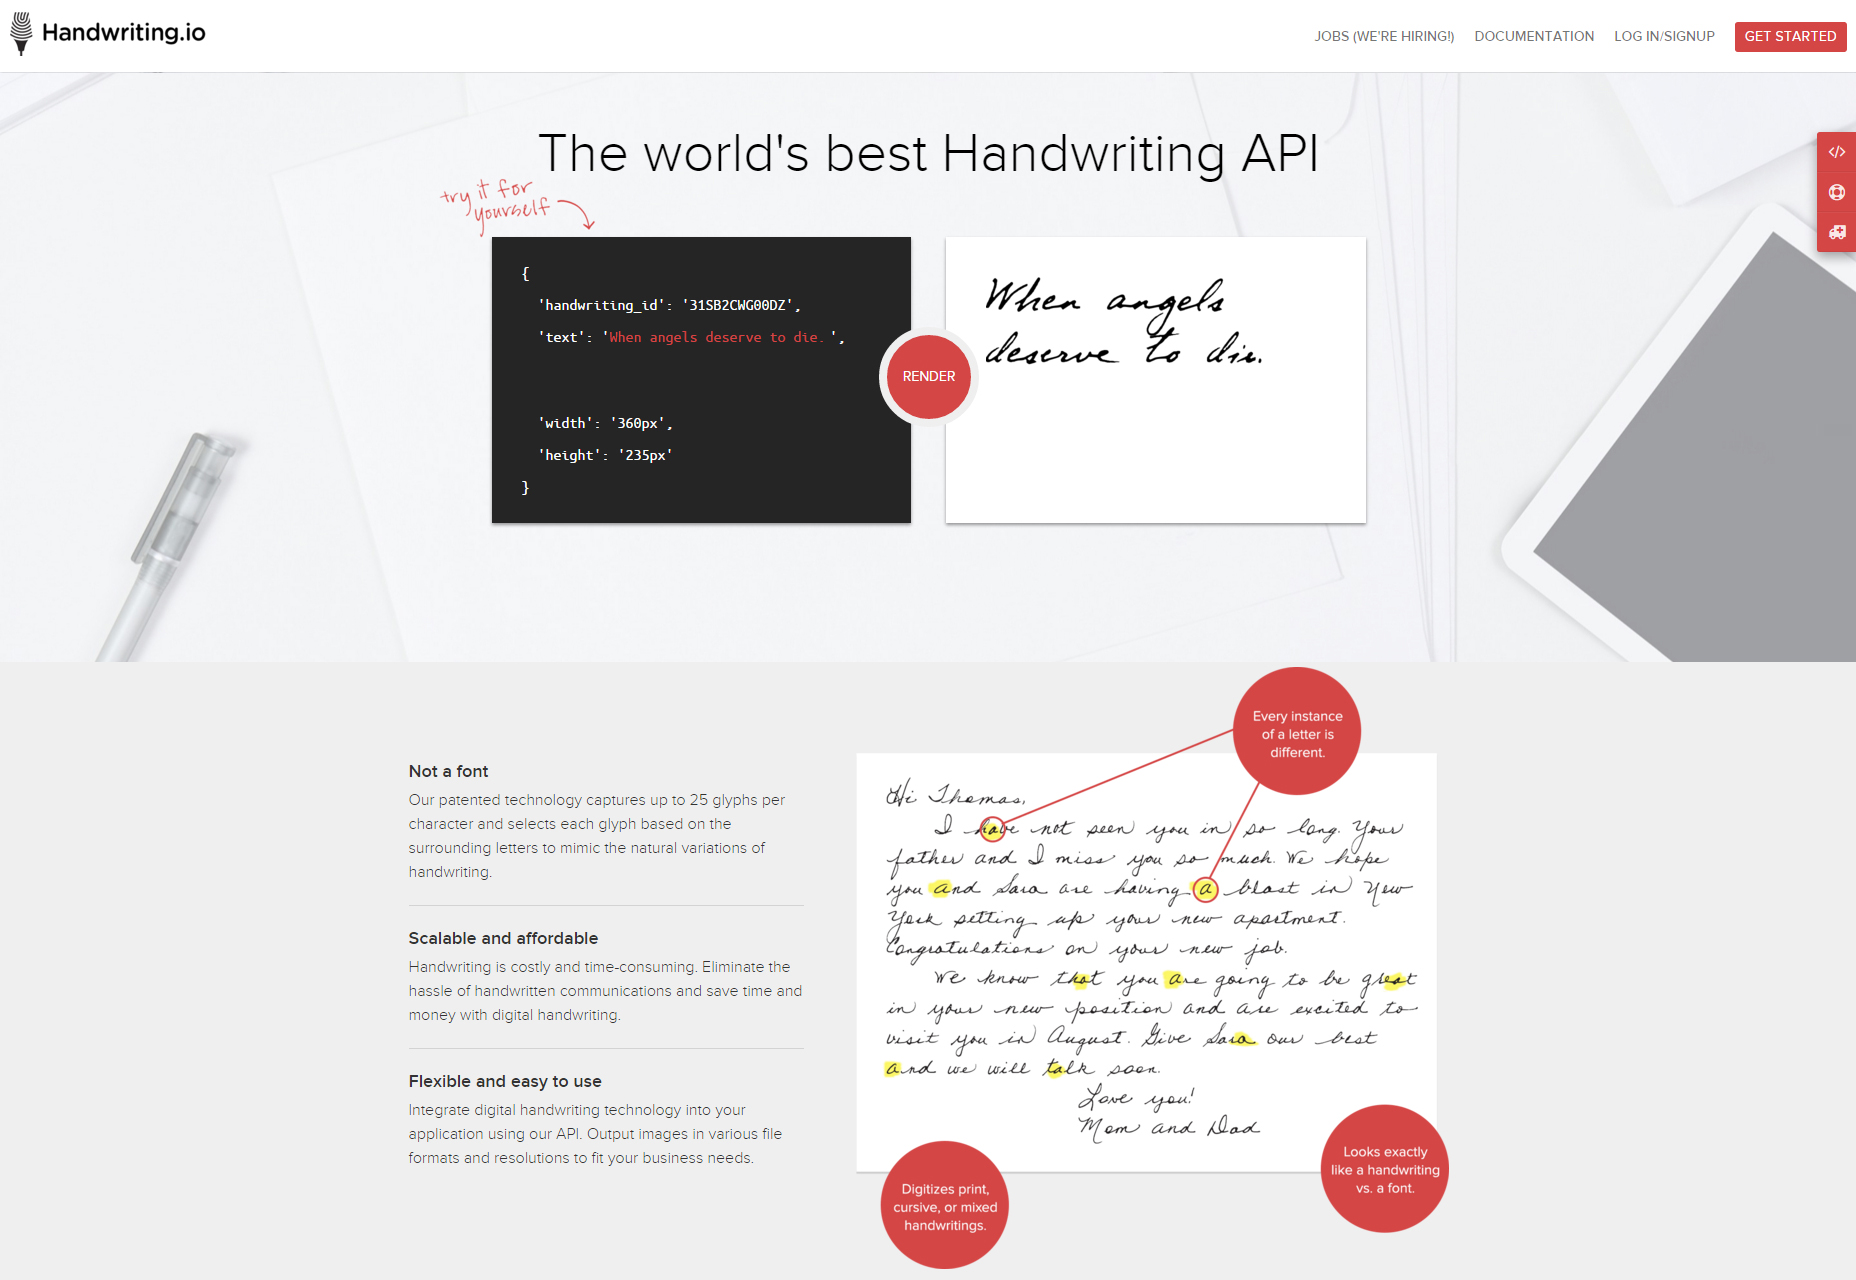 Handwriting.io: Realistic Looking Handwriting API